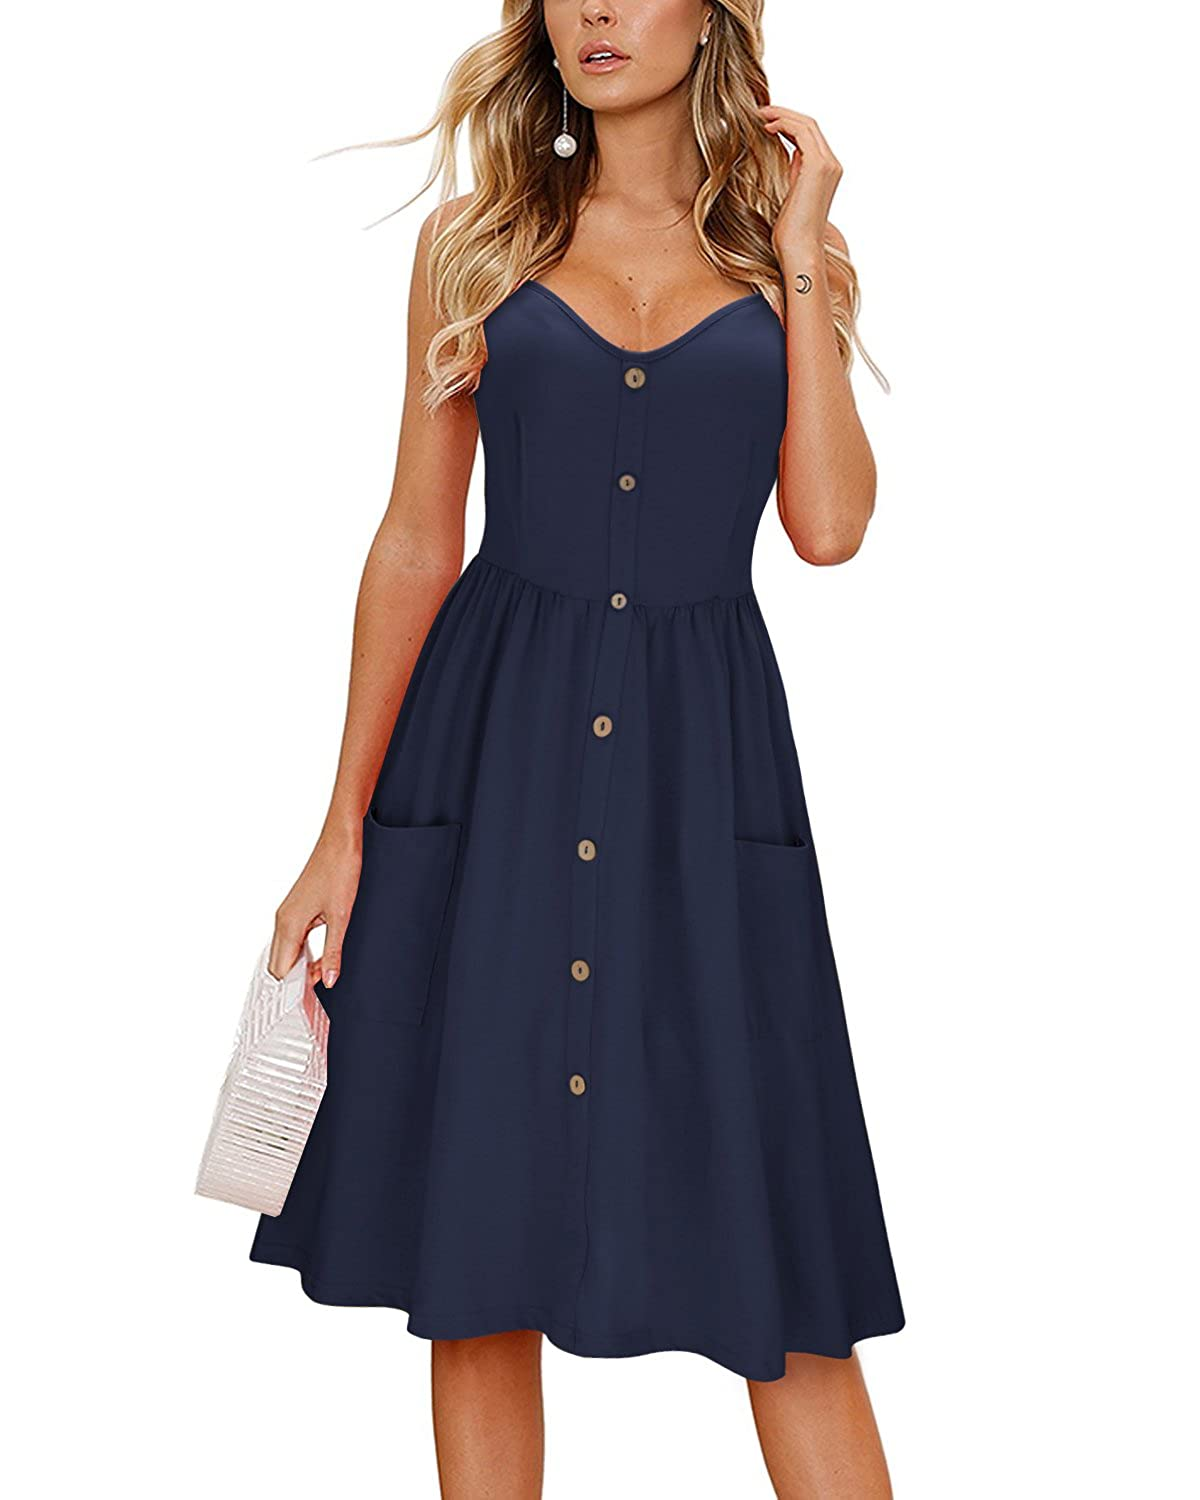 57926b4dc5c16 KILIG Women's Summer Sundress Spaghetti Strap Button Down Dress with  Pockets at Amazon Women's Clothing store: